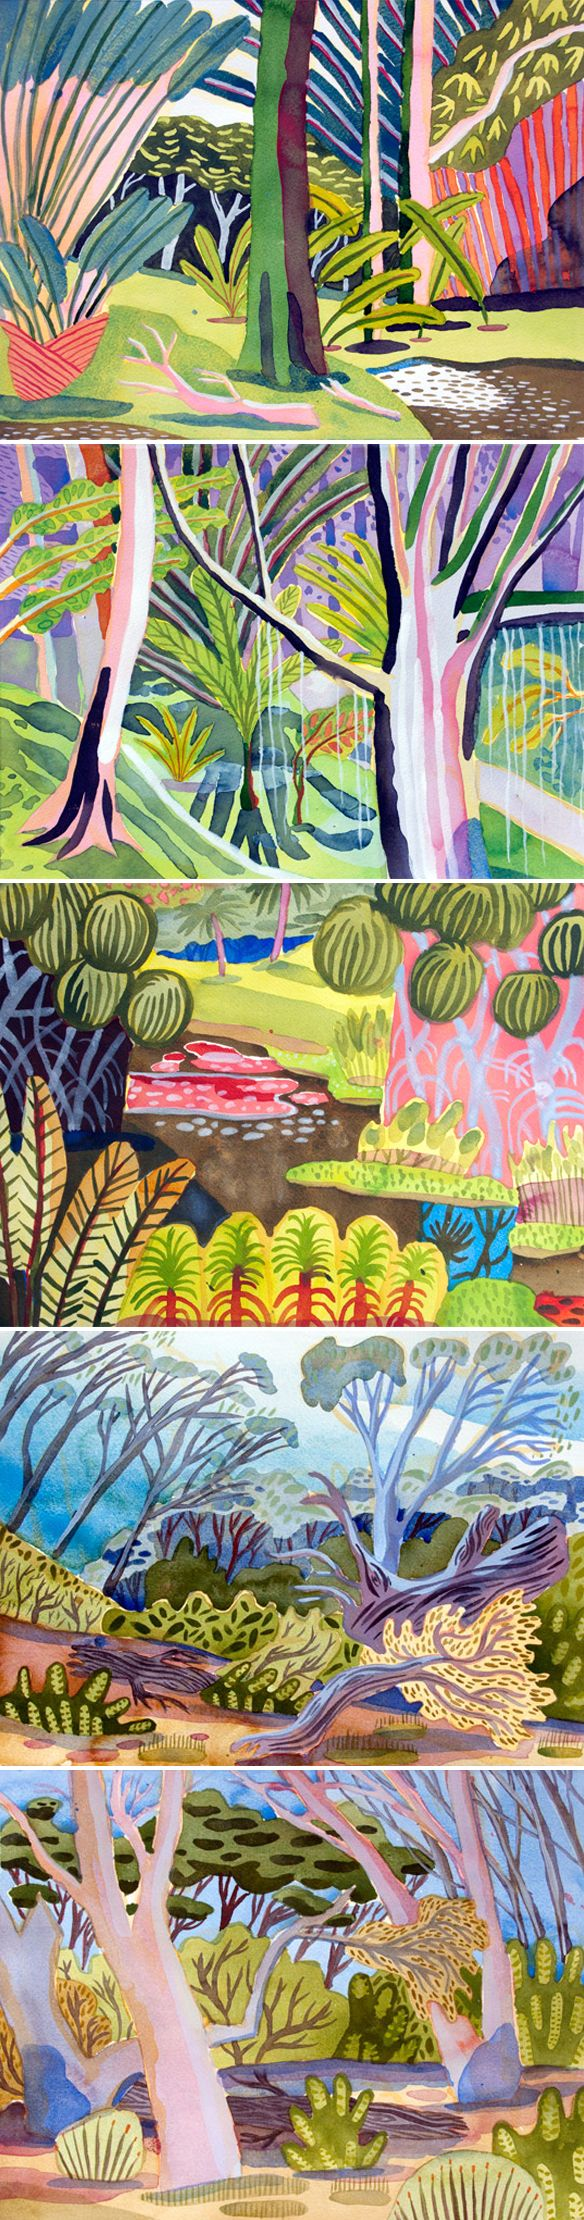 Tropical Garden - watercolor by Jennifer Tyers www.jennifertyers.com/ (via The Jealous Curator)